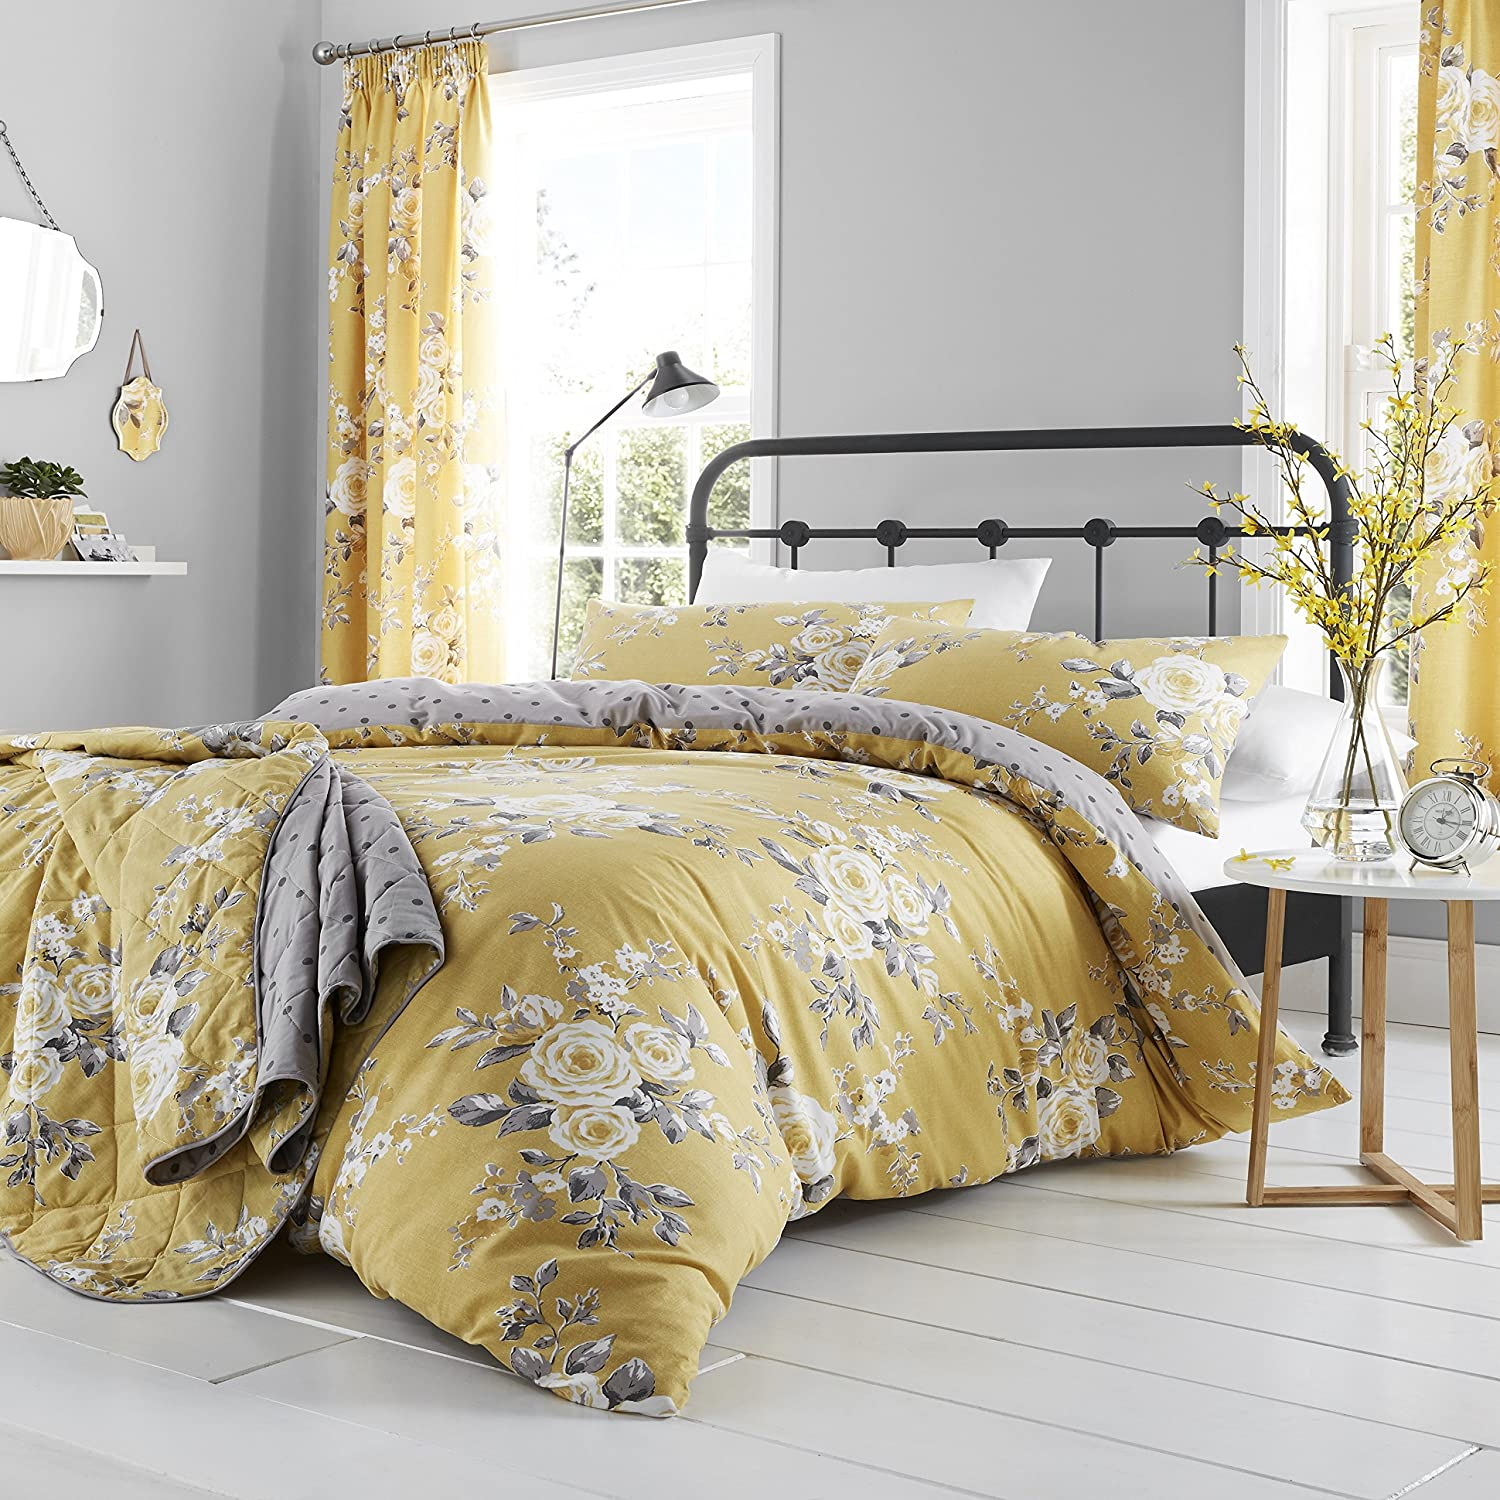 Catherine Lansfield Canterbury Housse de Couette, 100% Coton, Ochre, 220  x 240  + 80  x 80  (2) 220 x 240 + 80 x 80 (2) Bianca Europe